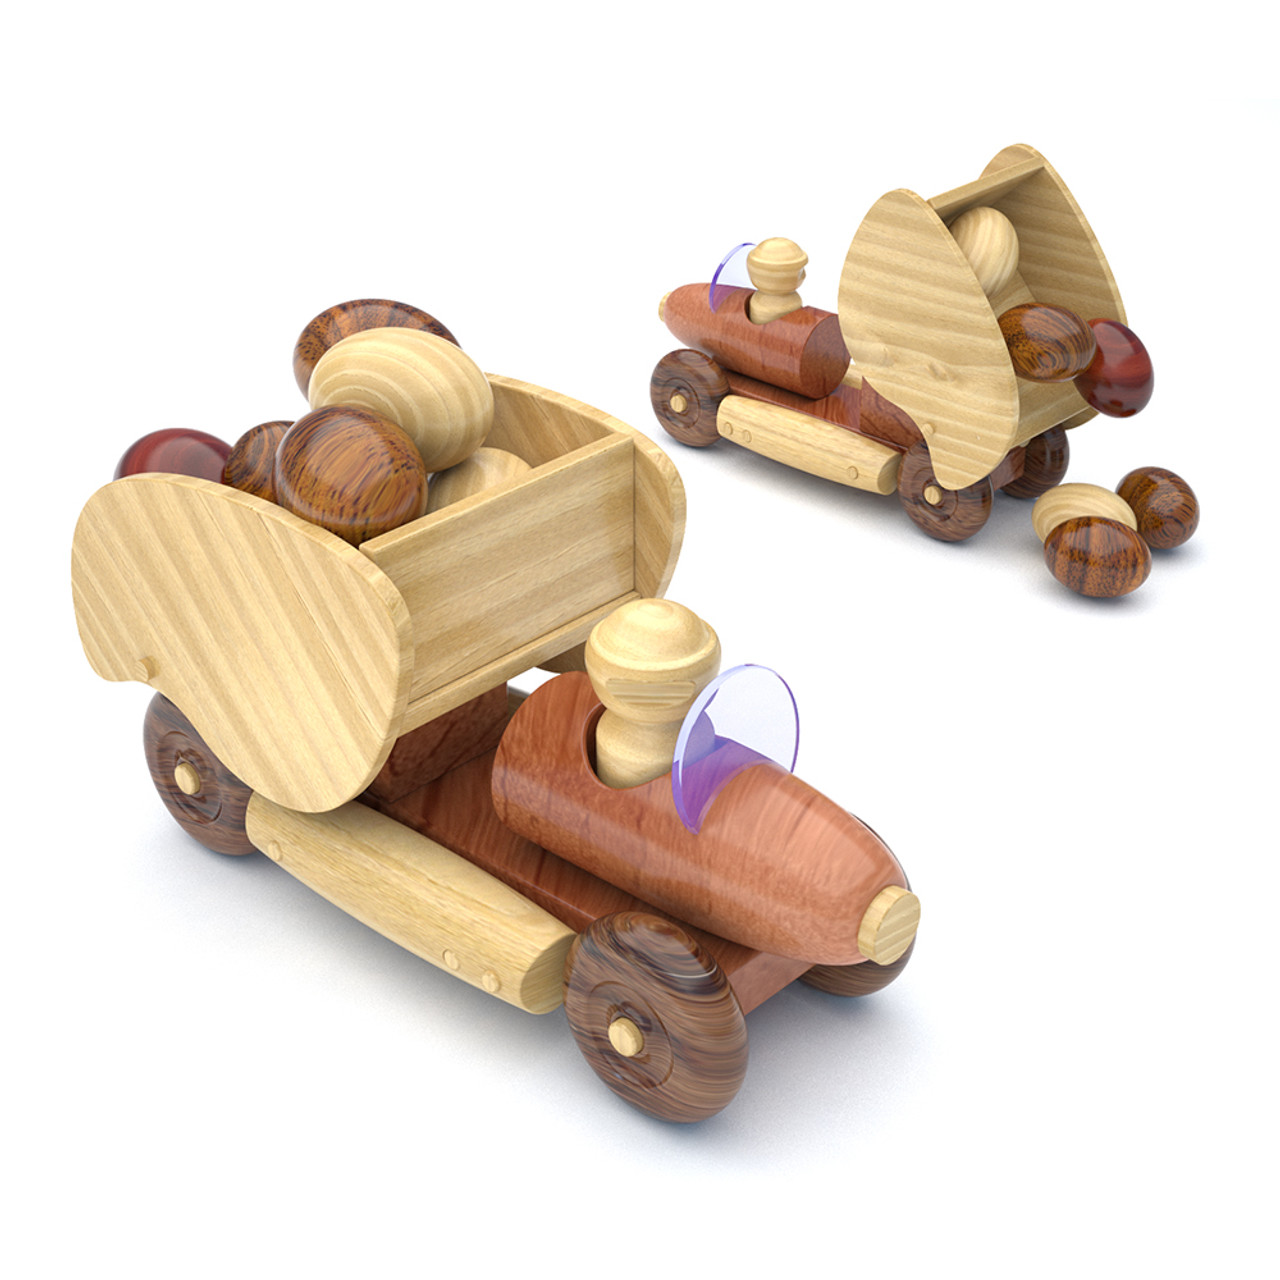 chuckle's rocket rollers for lathes wood toy plans (pdf download)